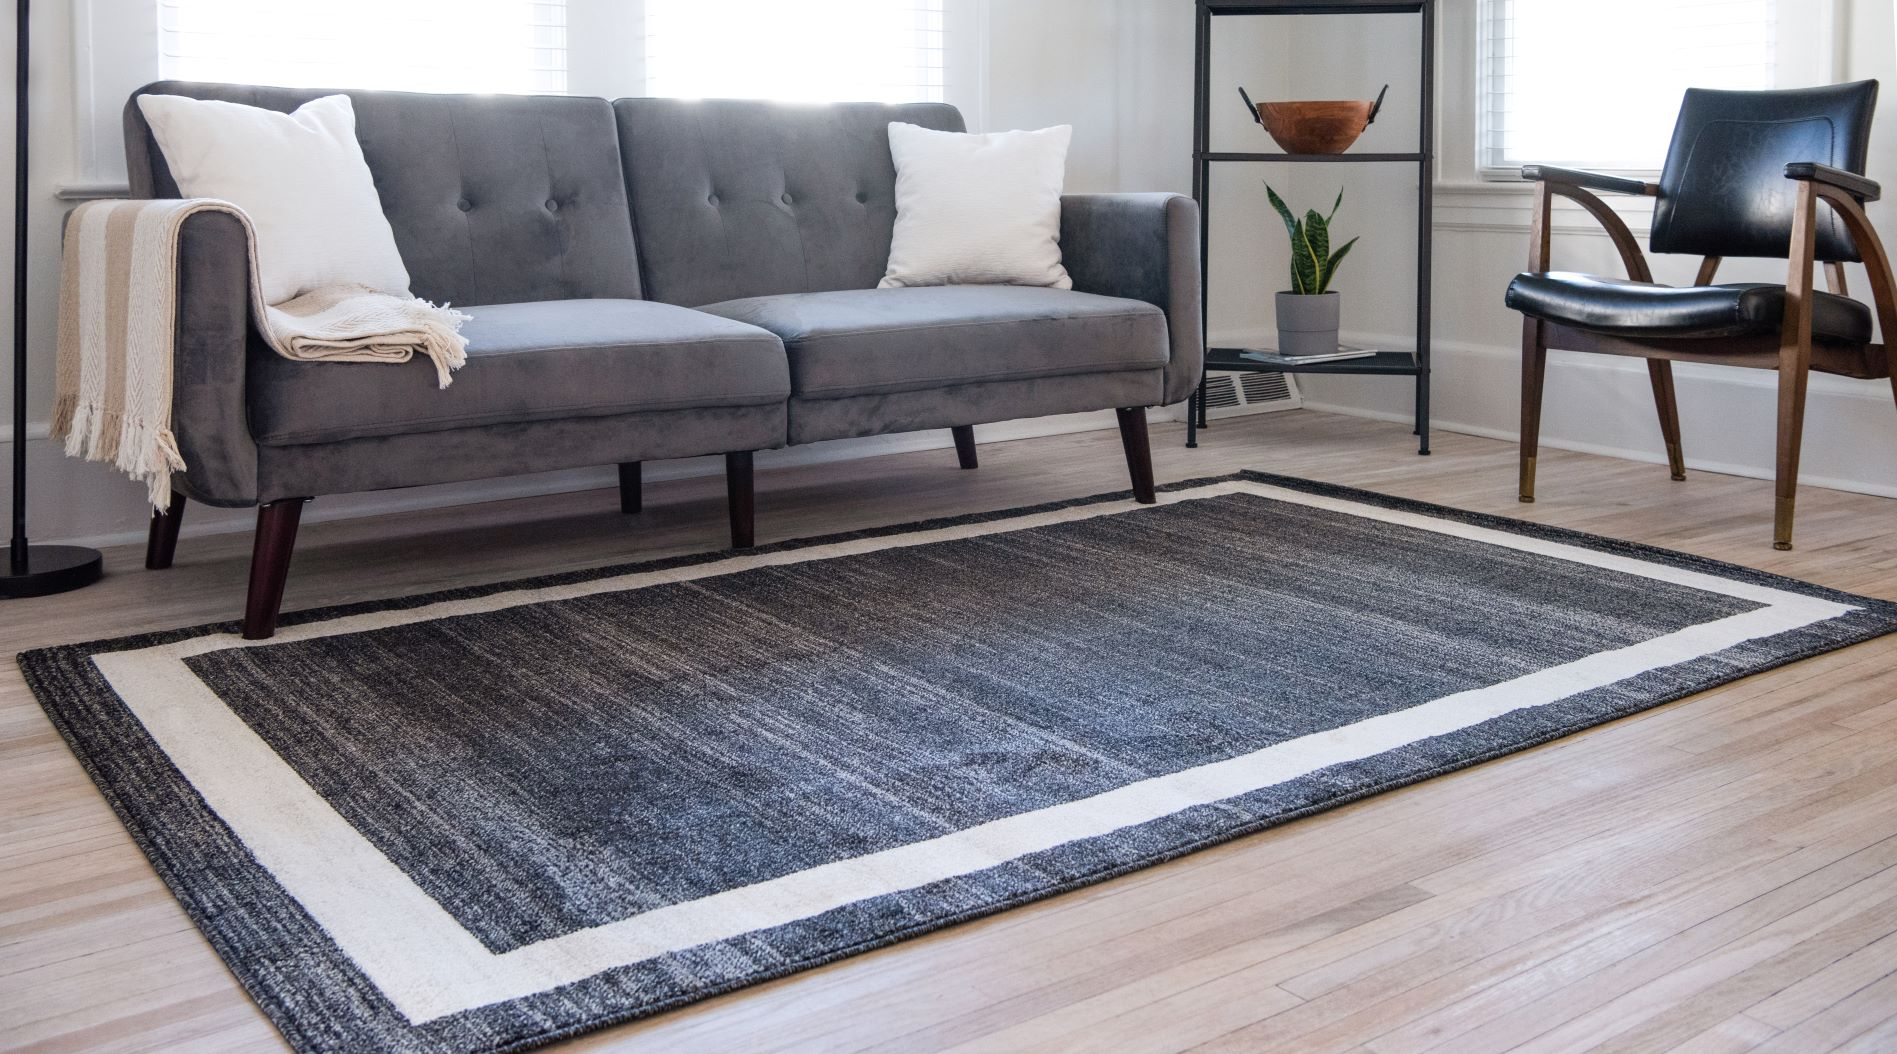 Choosing The Right Living Room Rug For